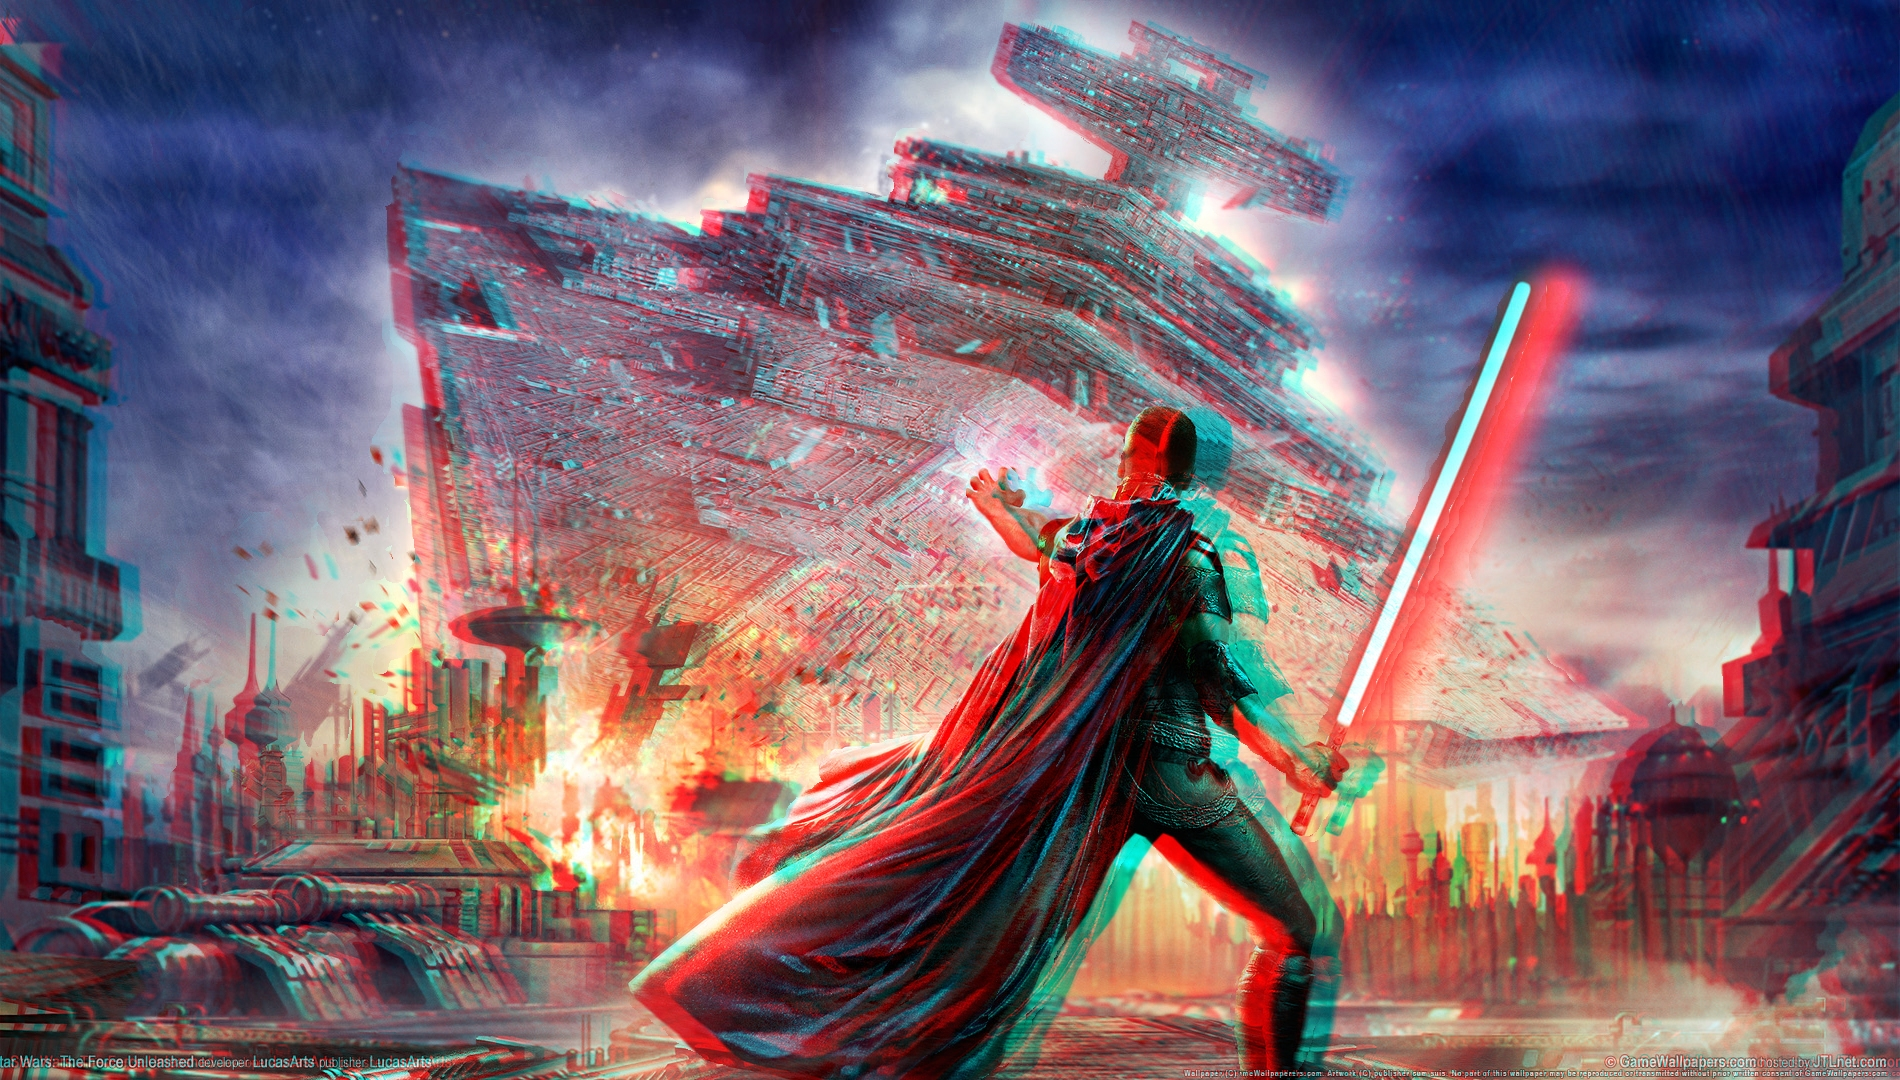 Star wars force unleashed 3d by watchall on deviantart for 3d star net